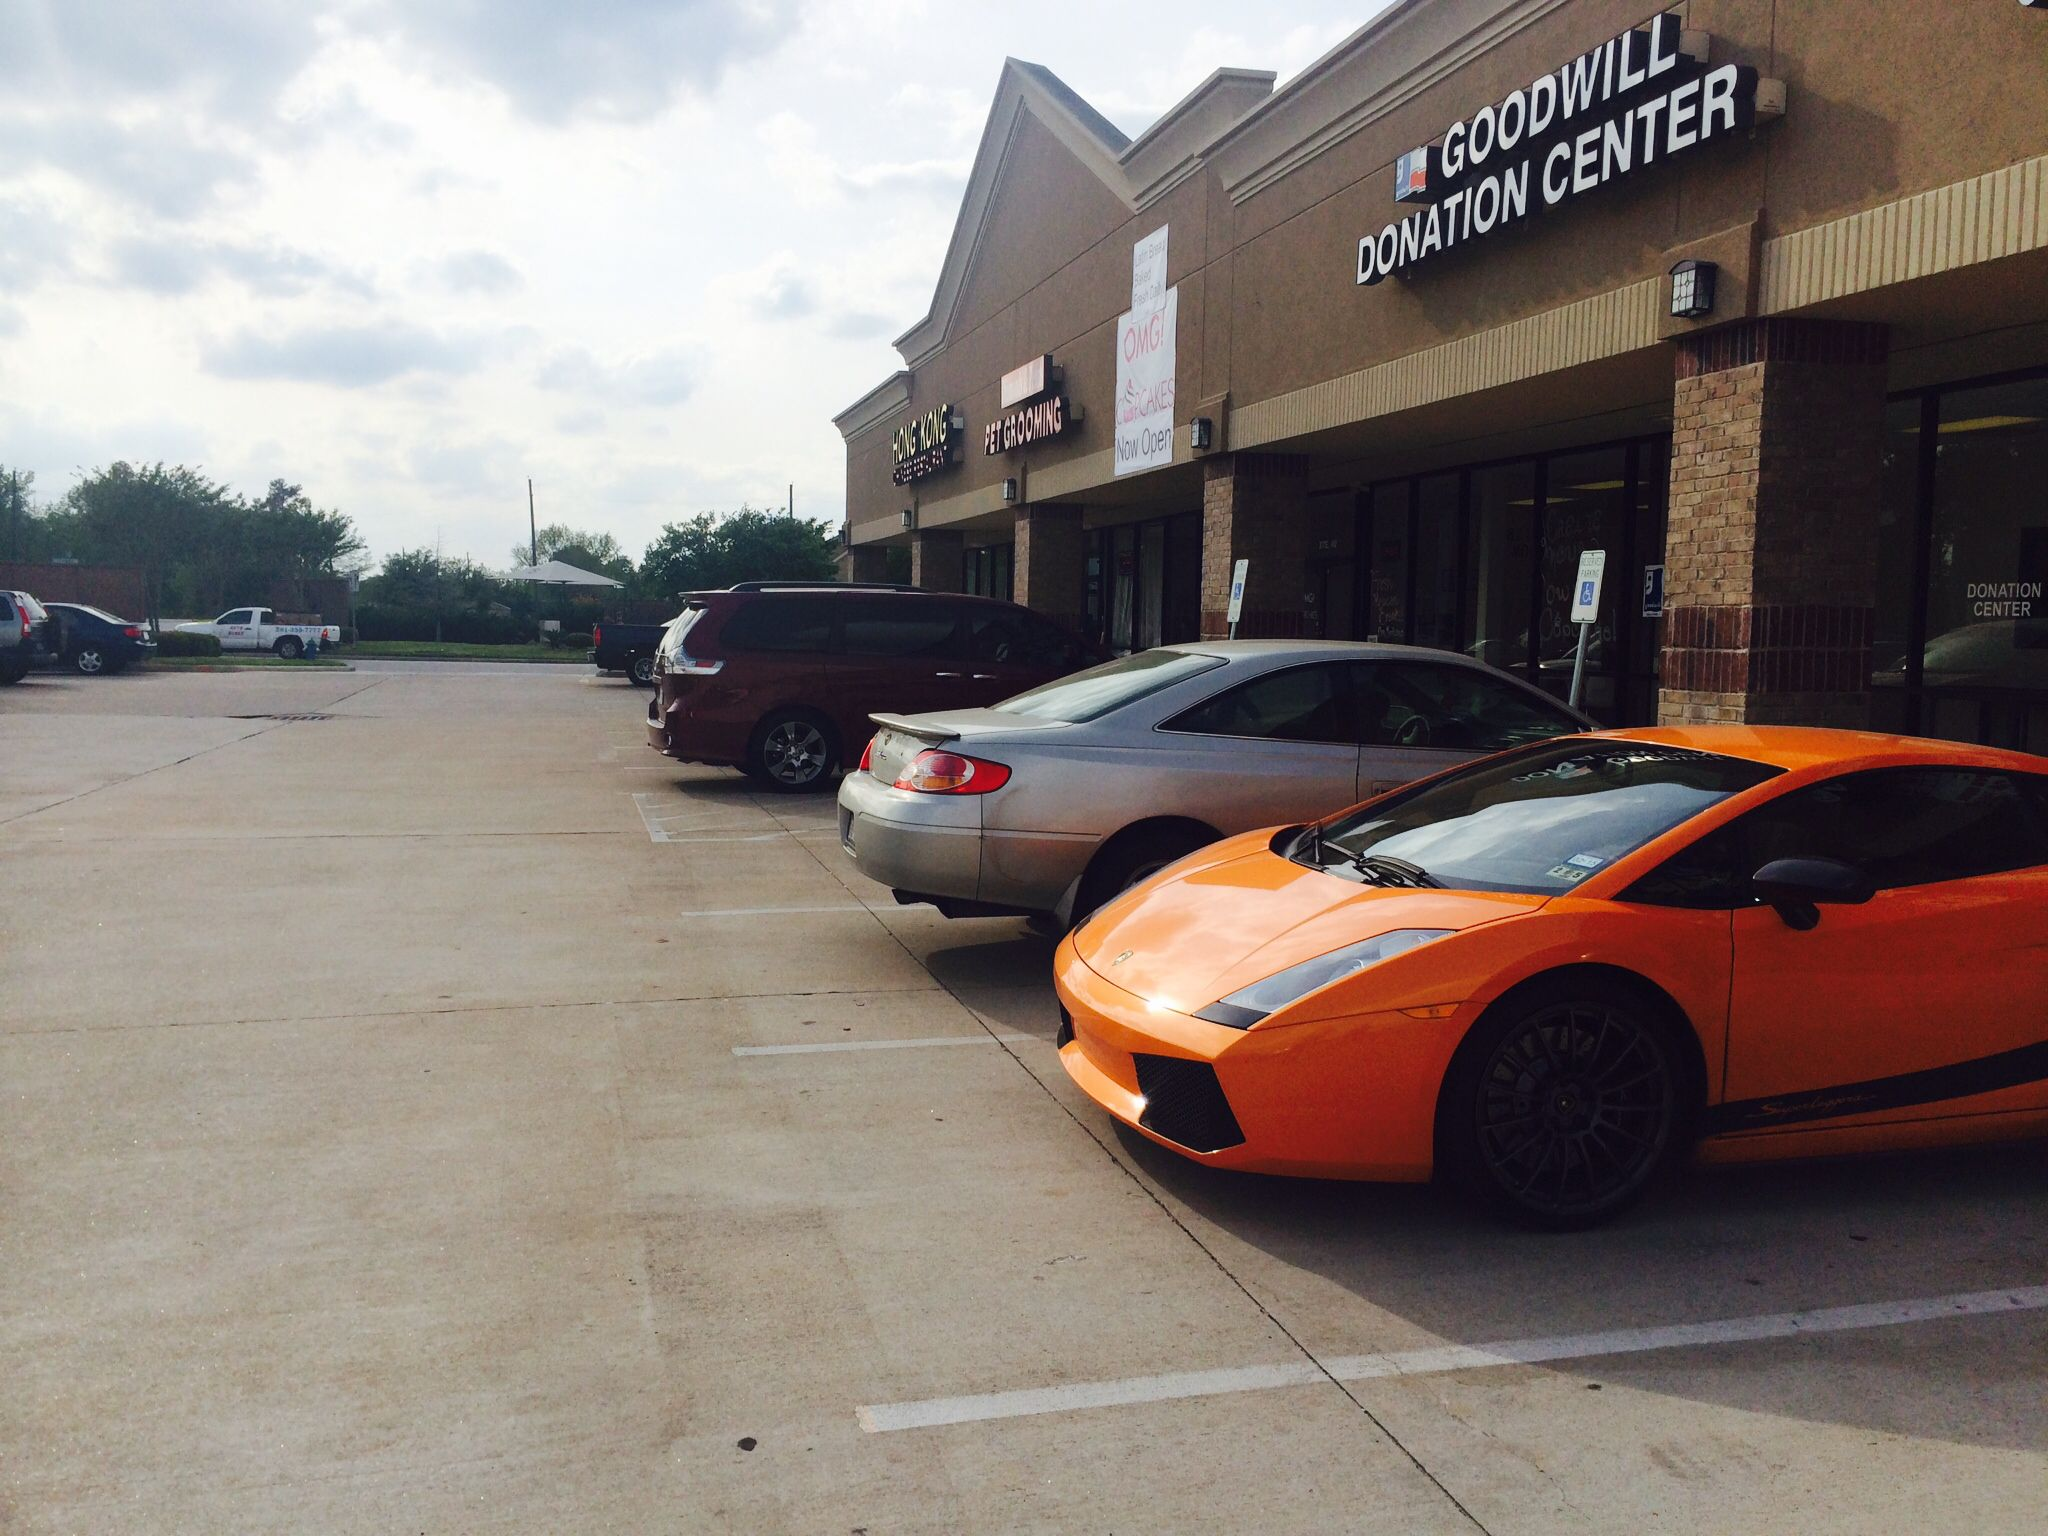 used cars watch sale lamborghini how does cheap for youtube a much cost